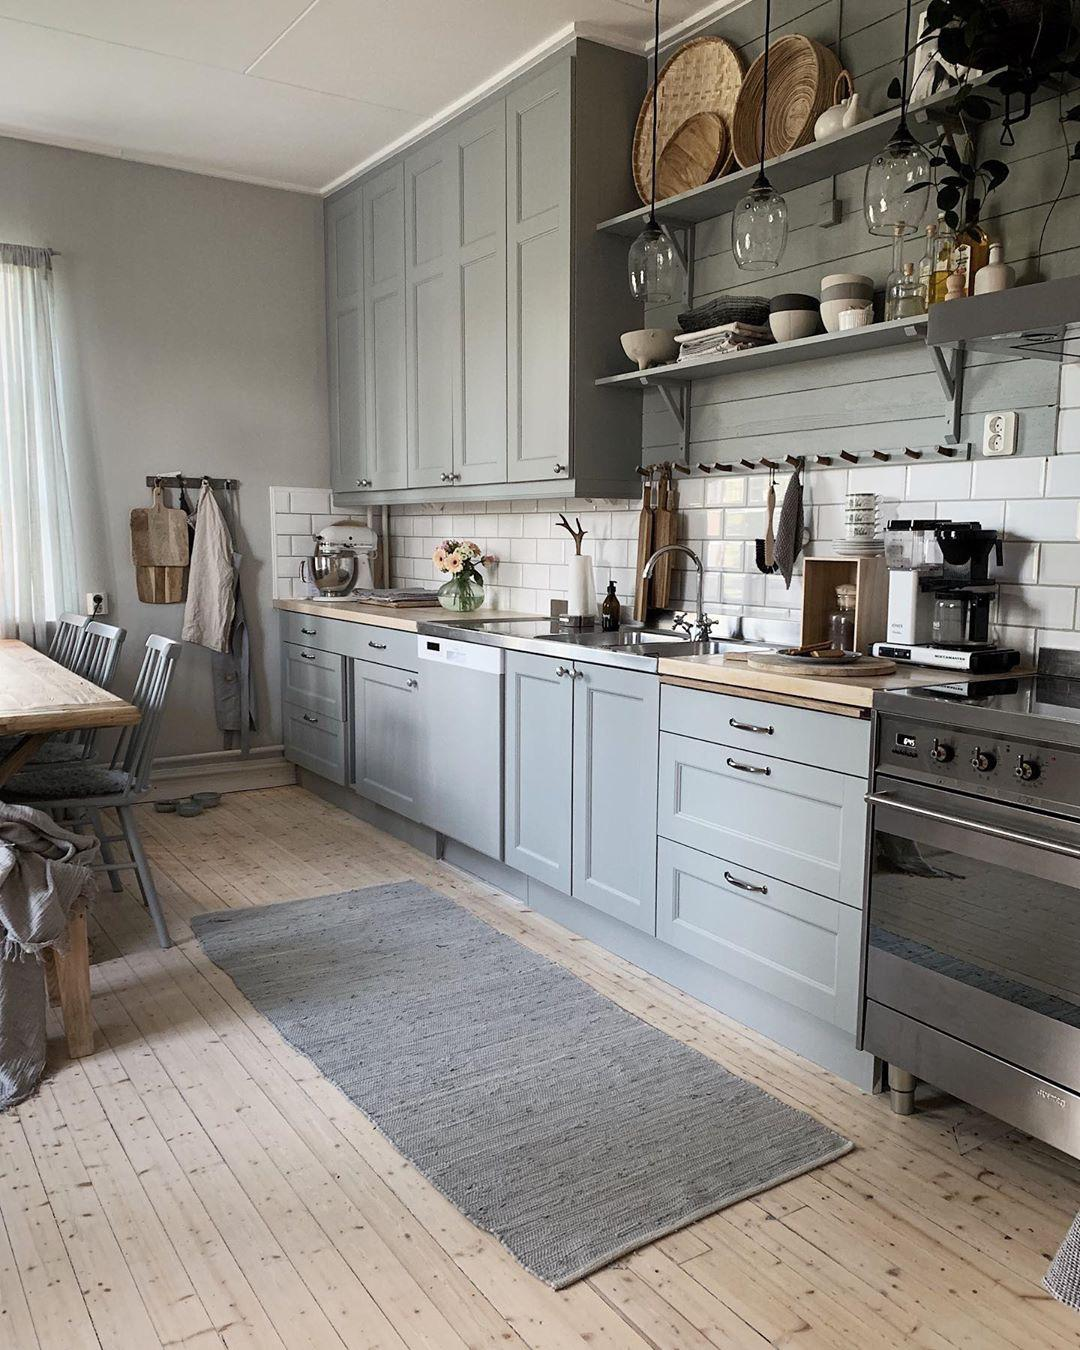 Inspiring Kitchen Design Ideas For Your Home - Page 2 of 35 - Liatsy Fashion